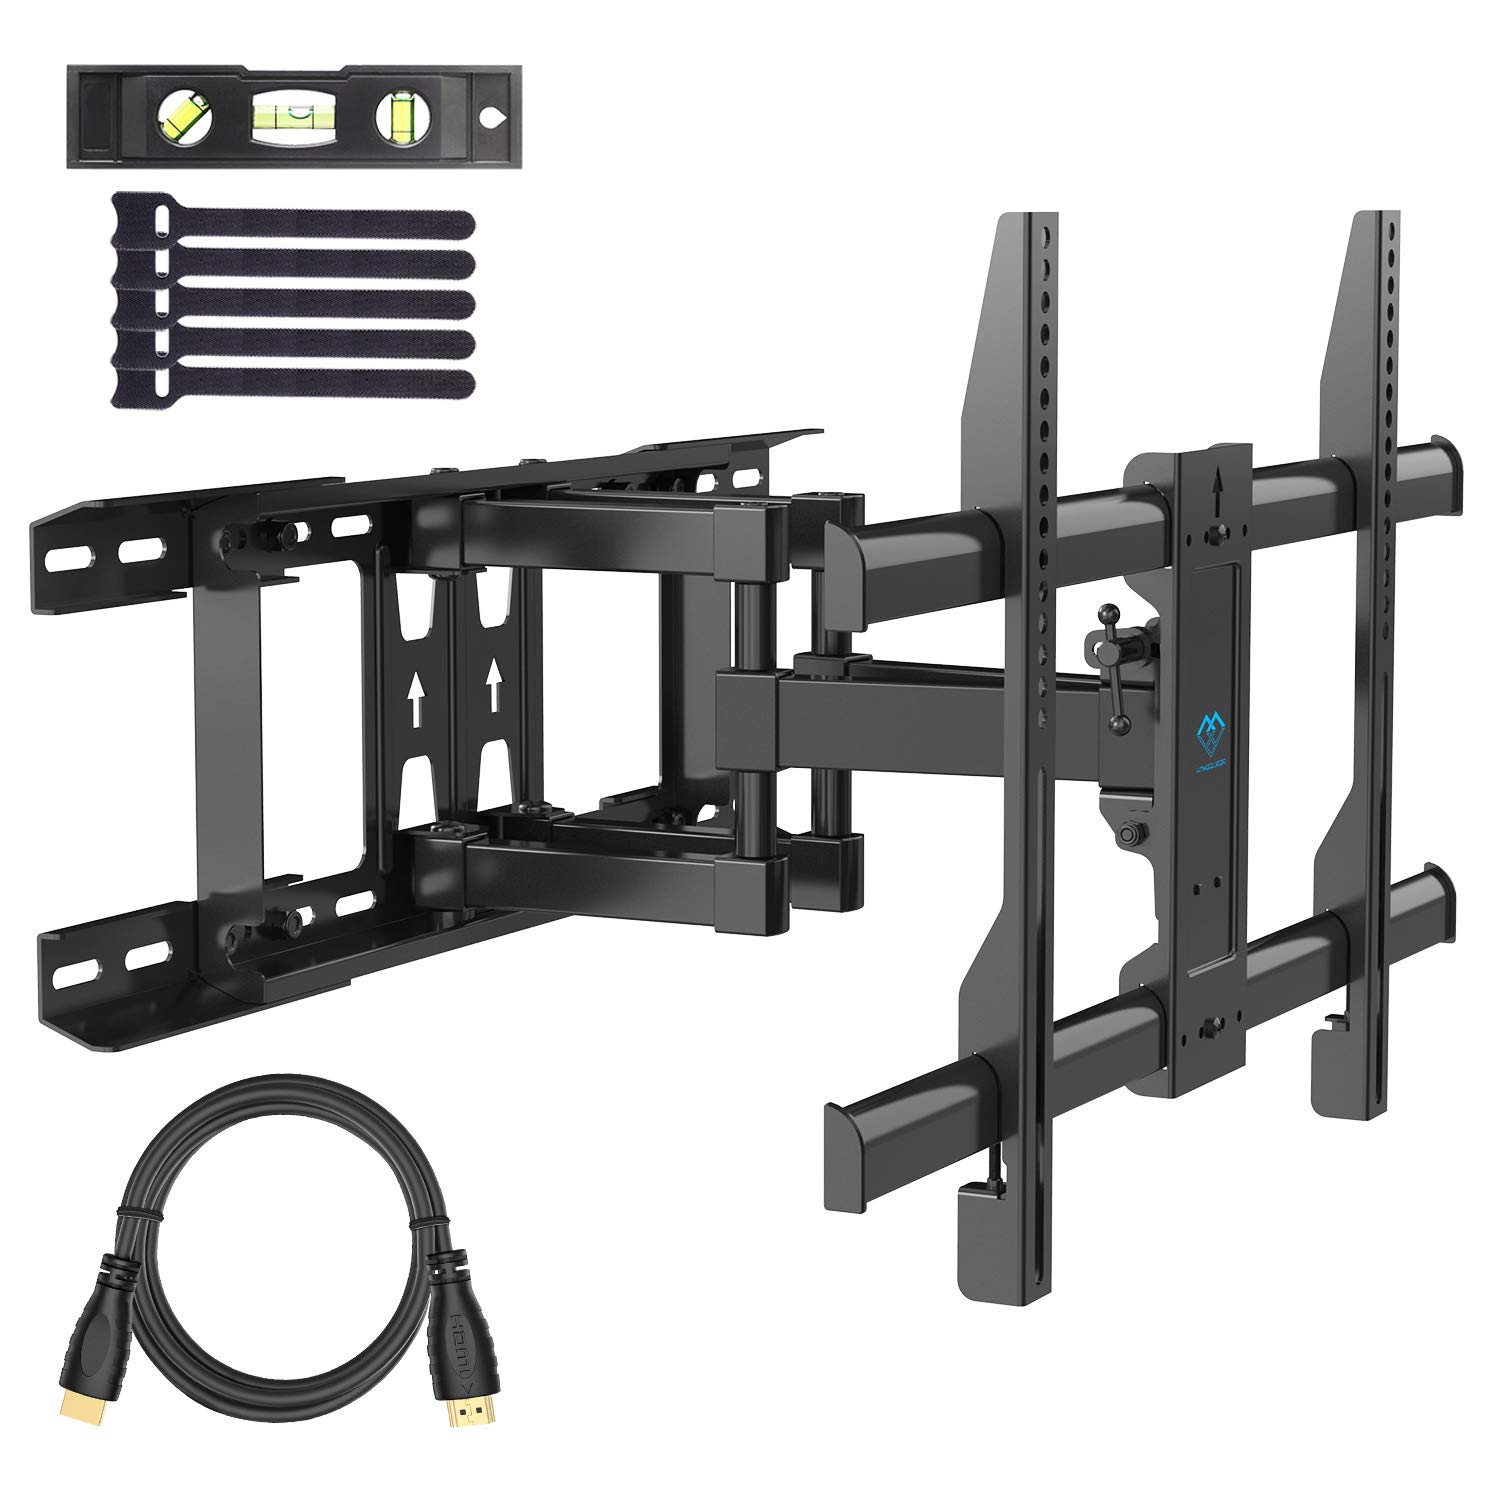 PERLESMITH TV Wall Mount Swivels, Tilts, Extends - Full Motion TV Mount with Articulating 16'' Arm Fits 16'', 18'', 24'' Wood Studs - VESA 400x400mm for 37-55 Inch LED LCD Flat Screen Plasma TVs by PERLESMITH